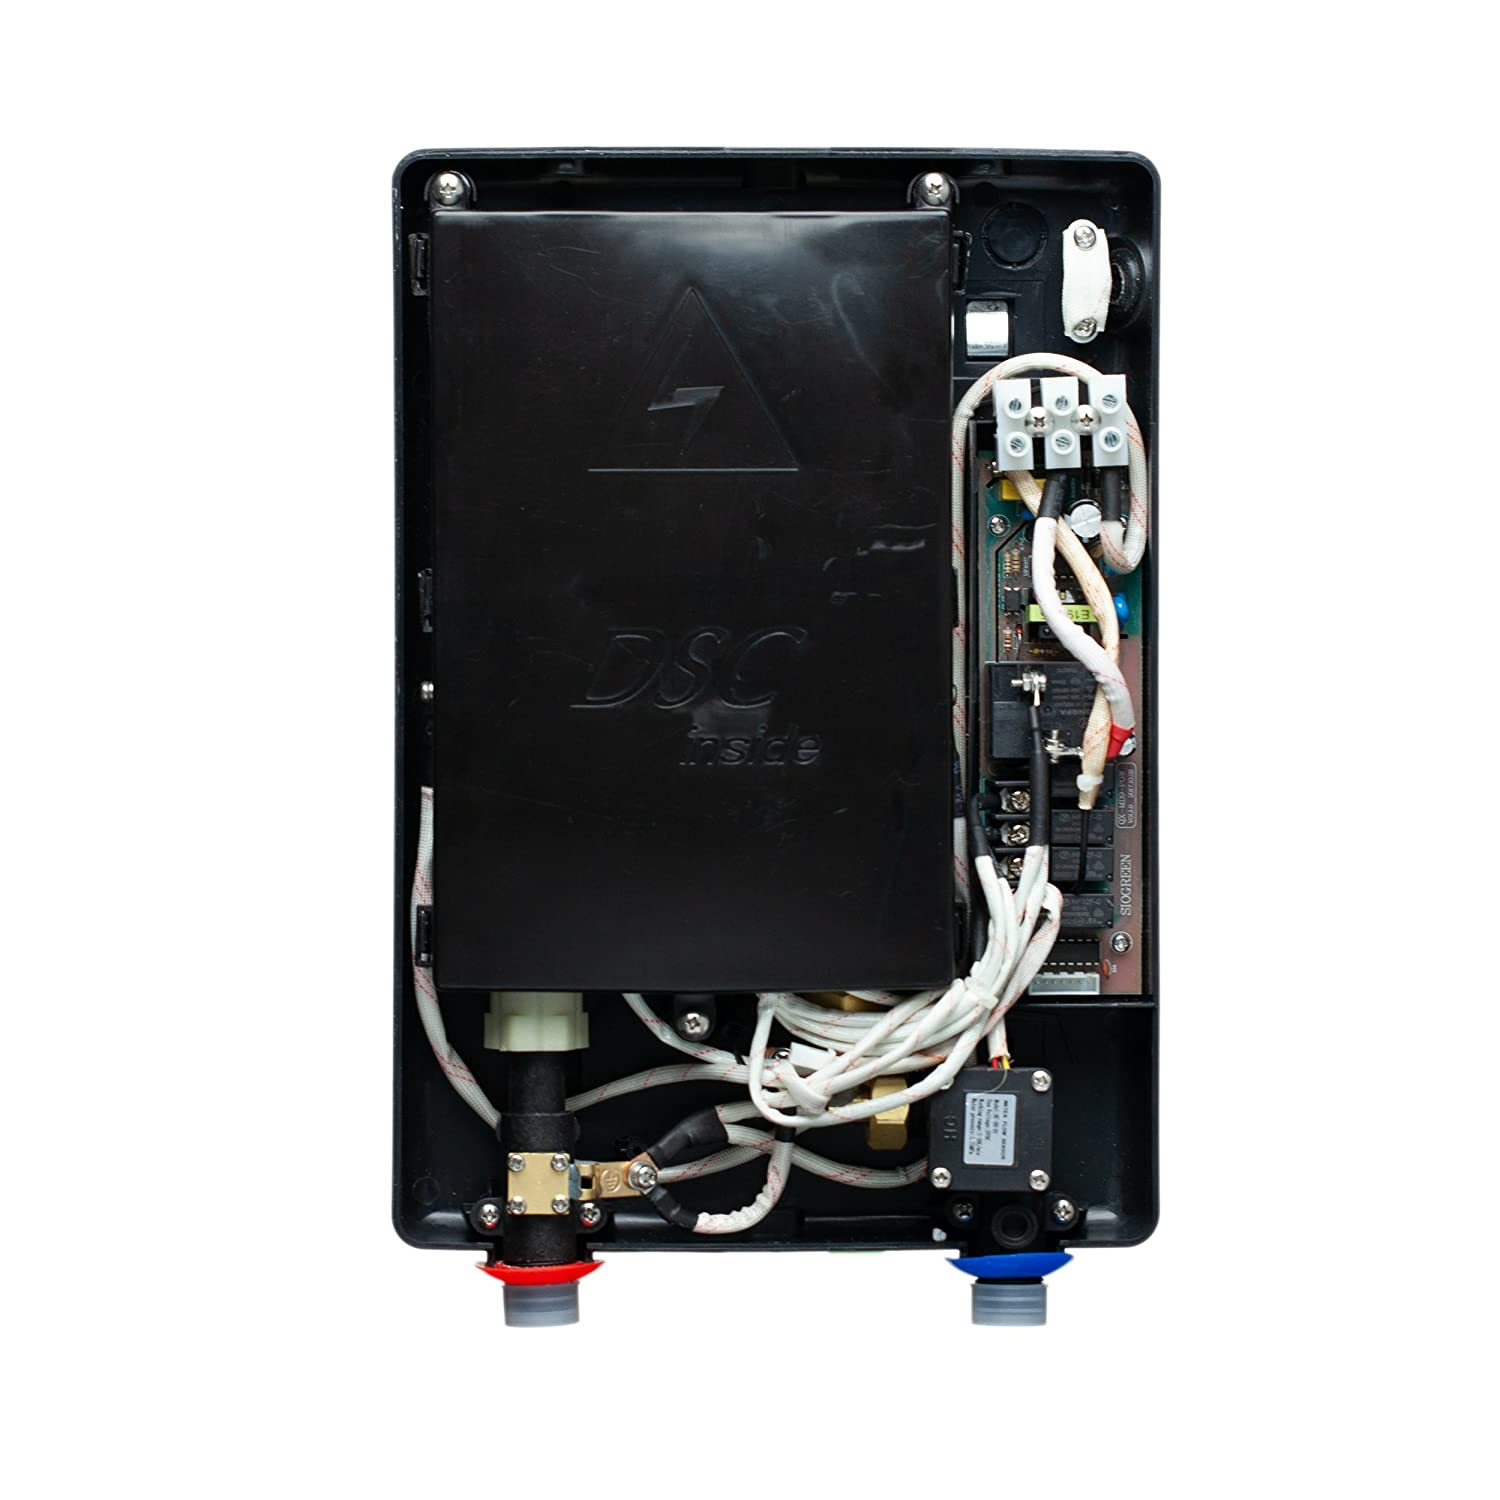 Infrared Tank-Less Instant Hot Water Heater Sio Green IR30 POU Electric Tankless Water Heater 110v 30A//3.4kW No Algae 120v // 8A No Lime Scale No Bacteria Cost-Effective /& Corrosion Free